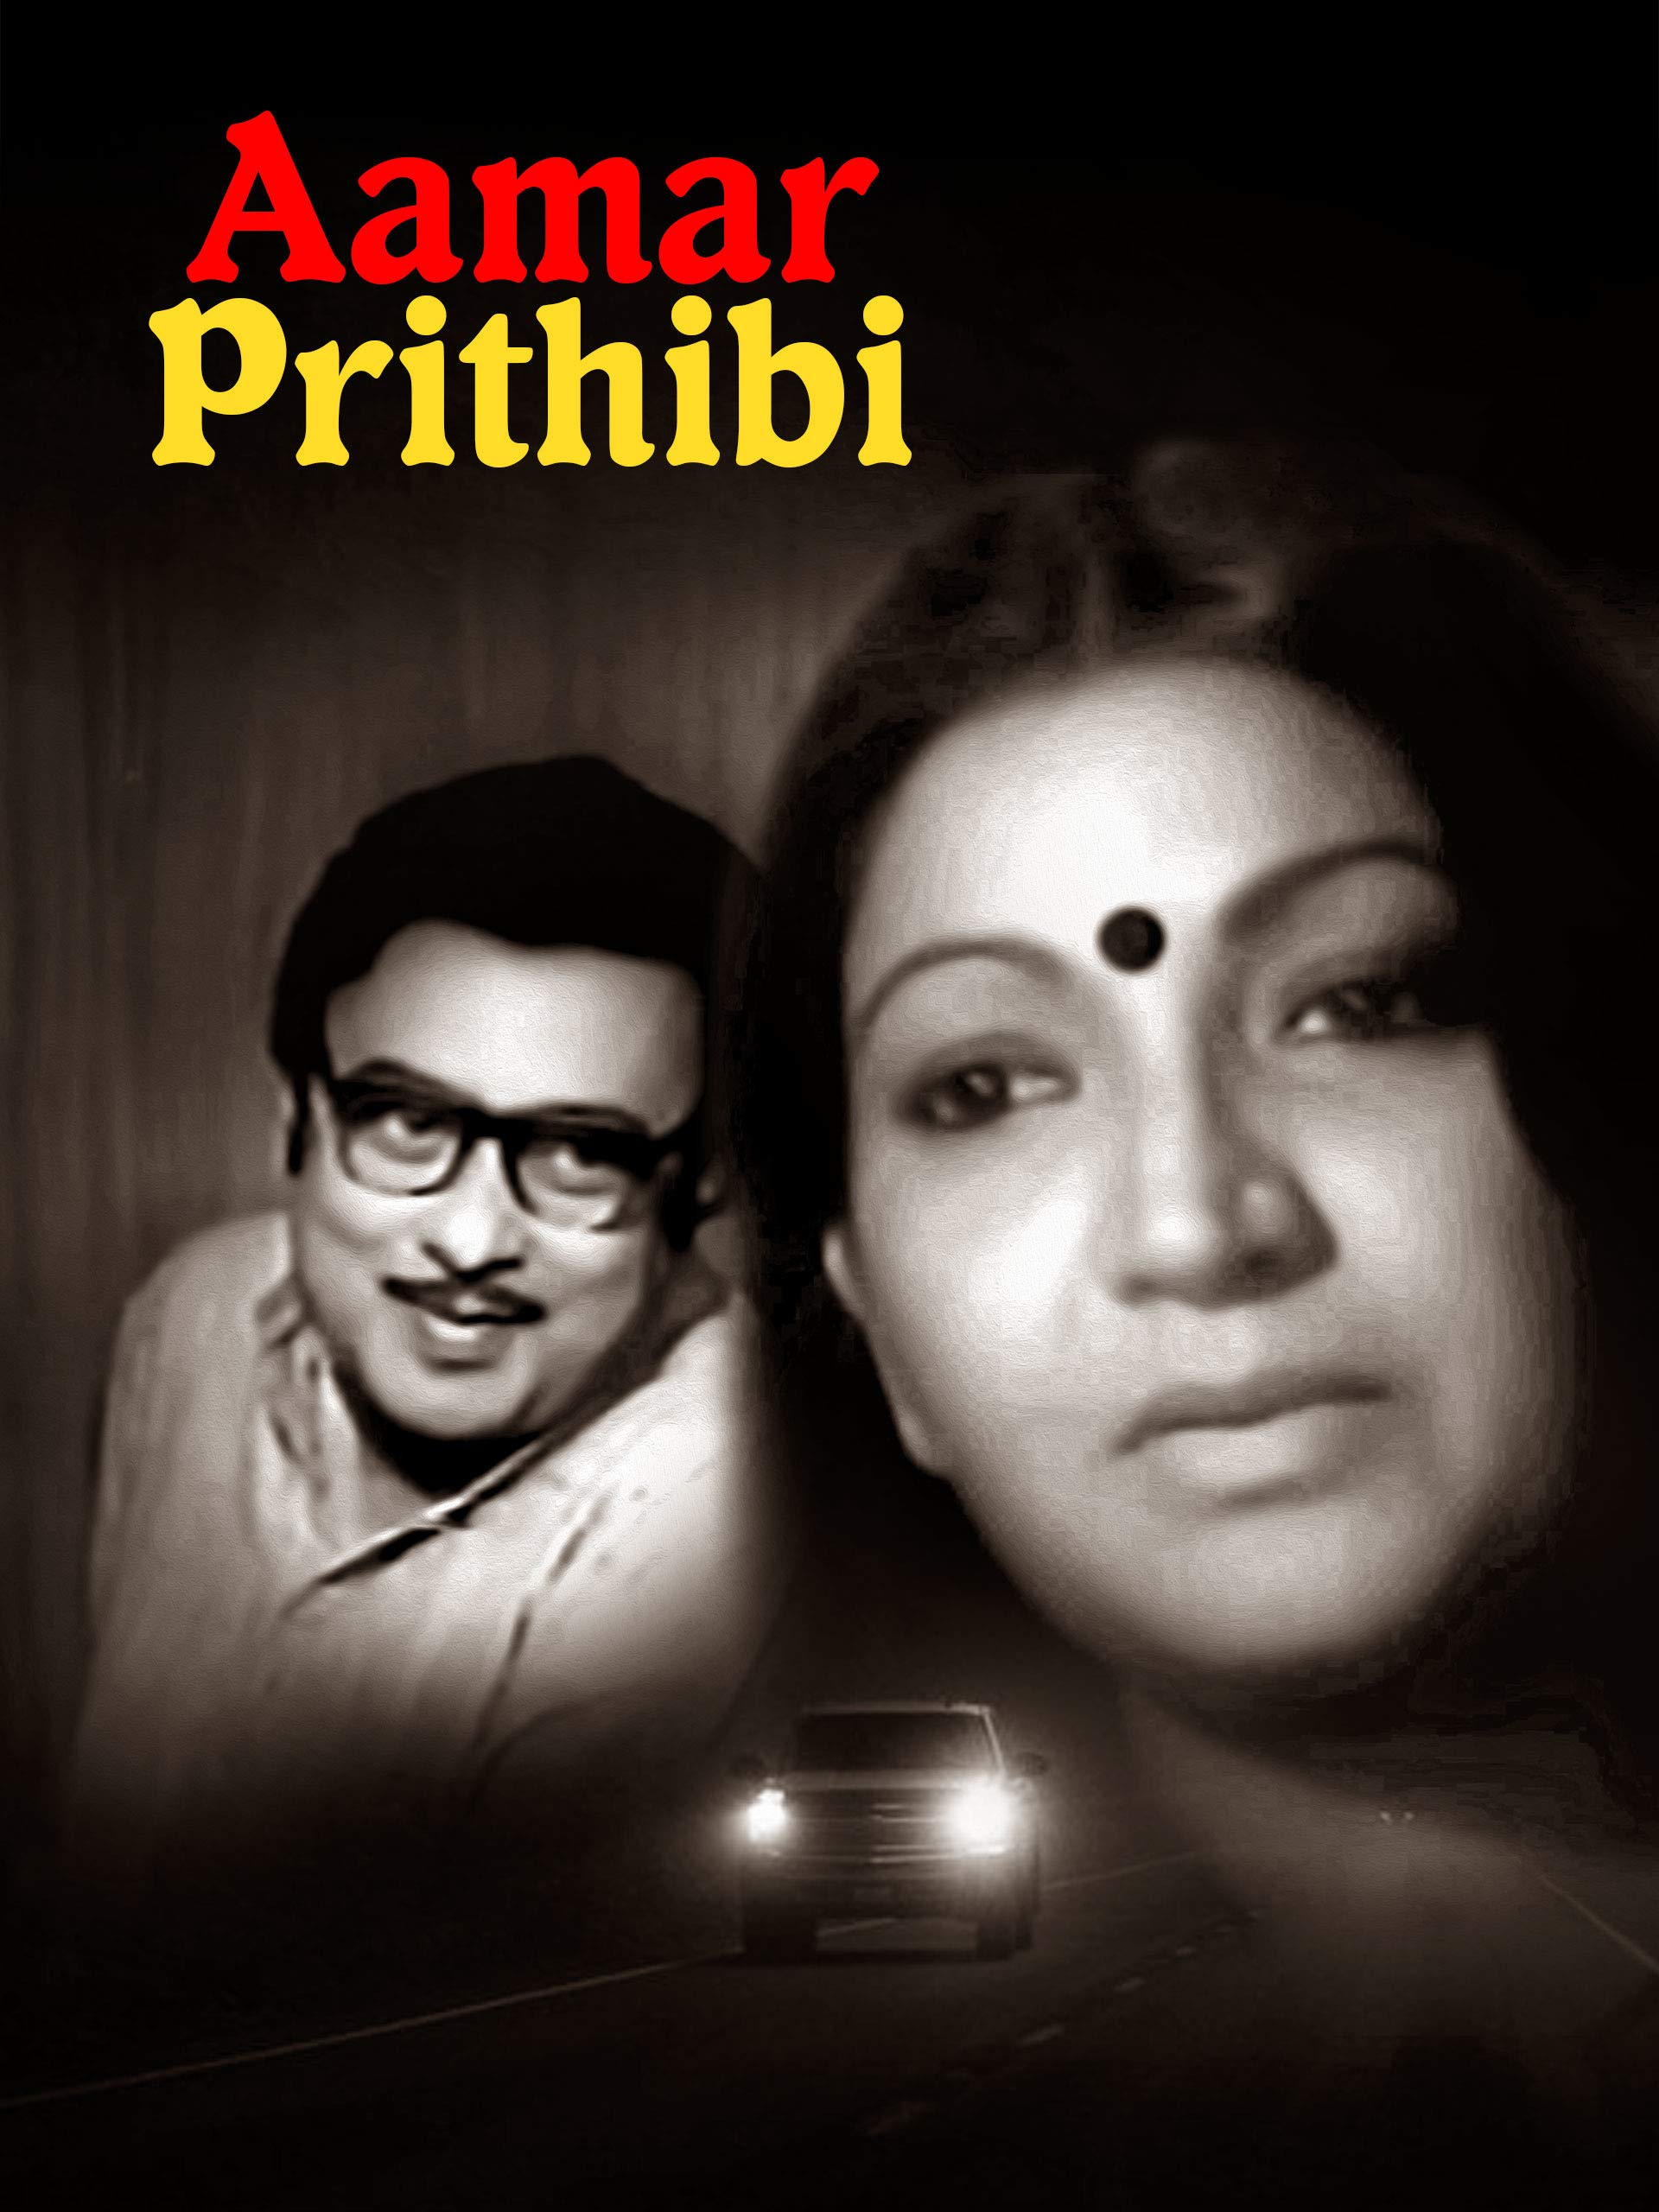 Watch Amar Prithibi Prime Video